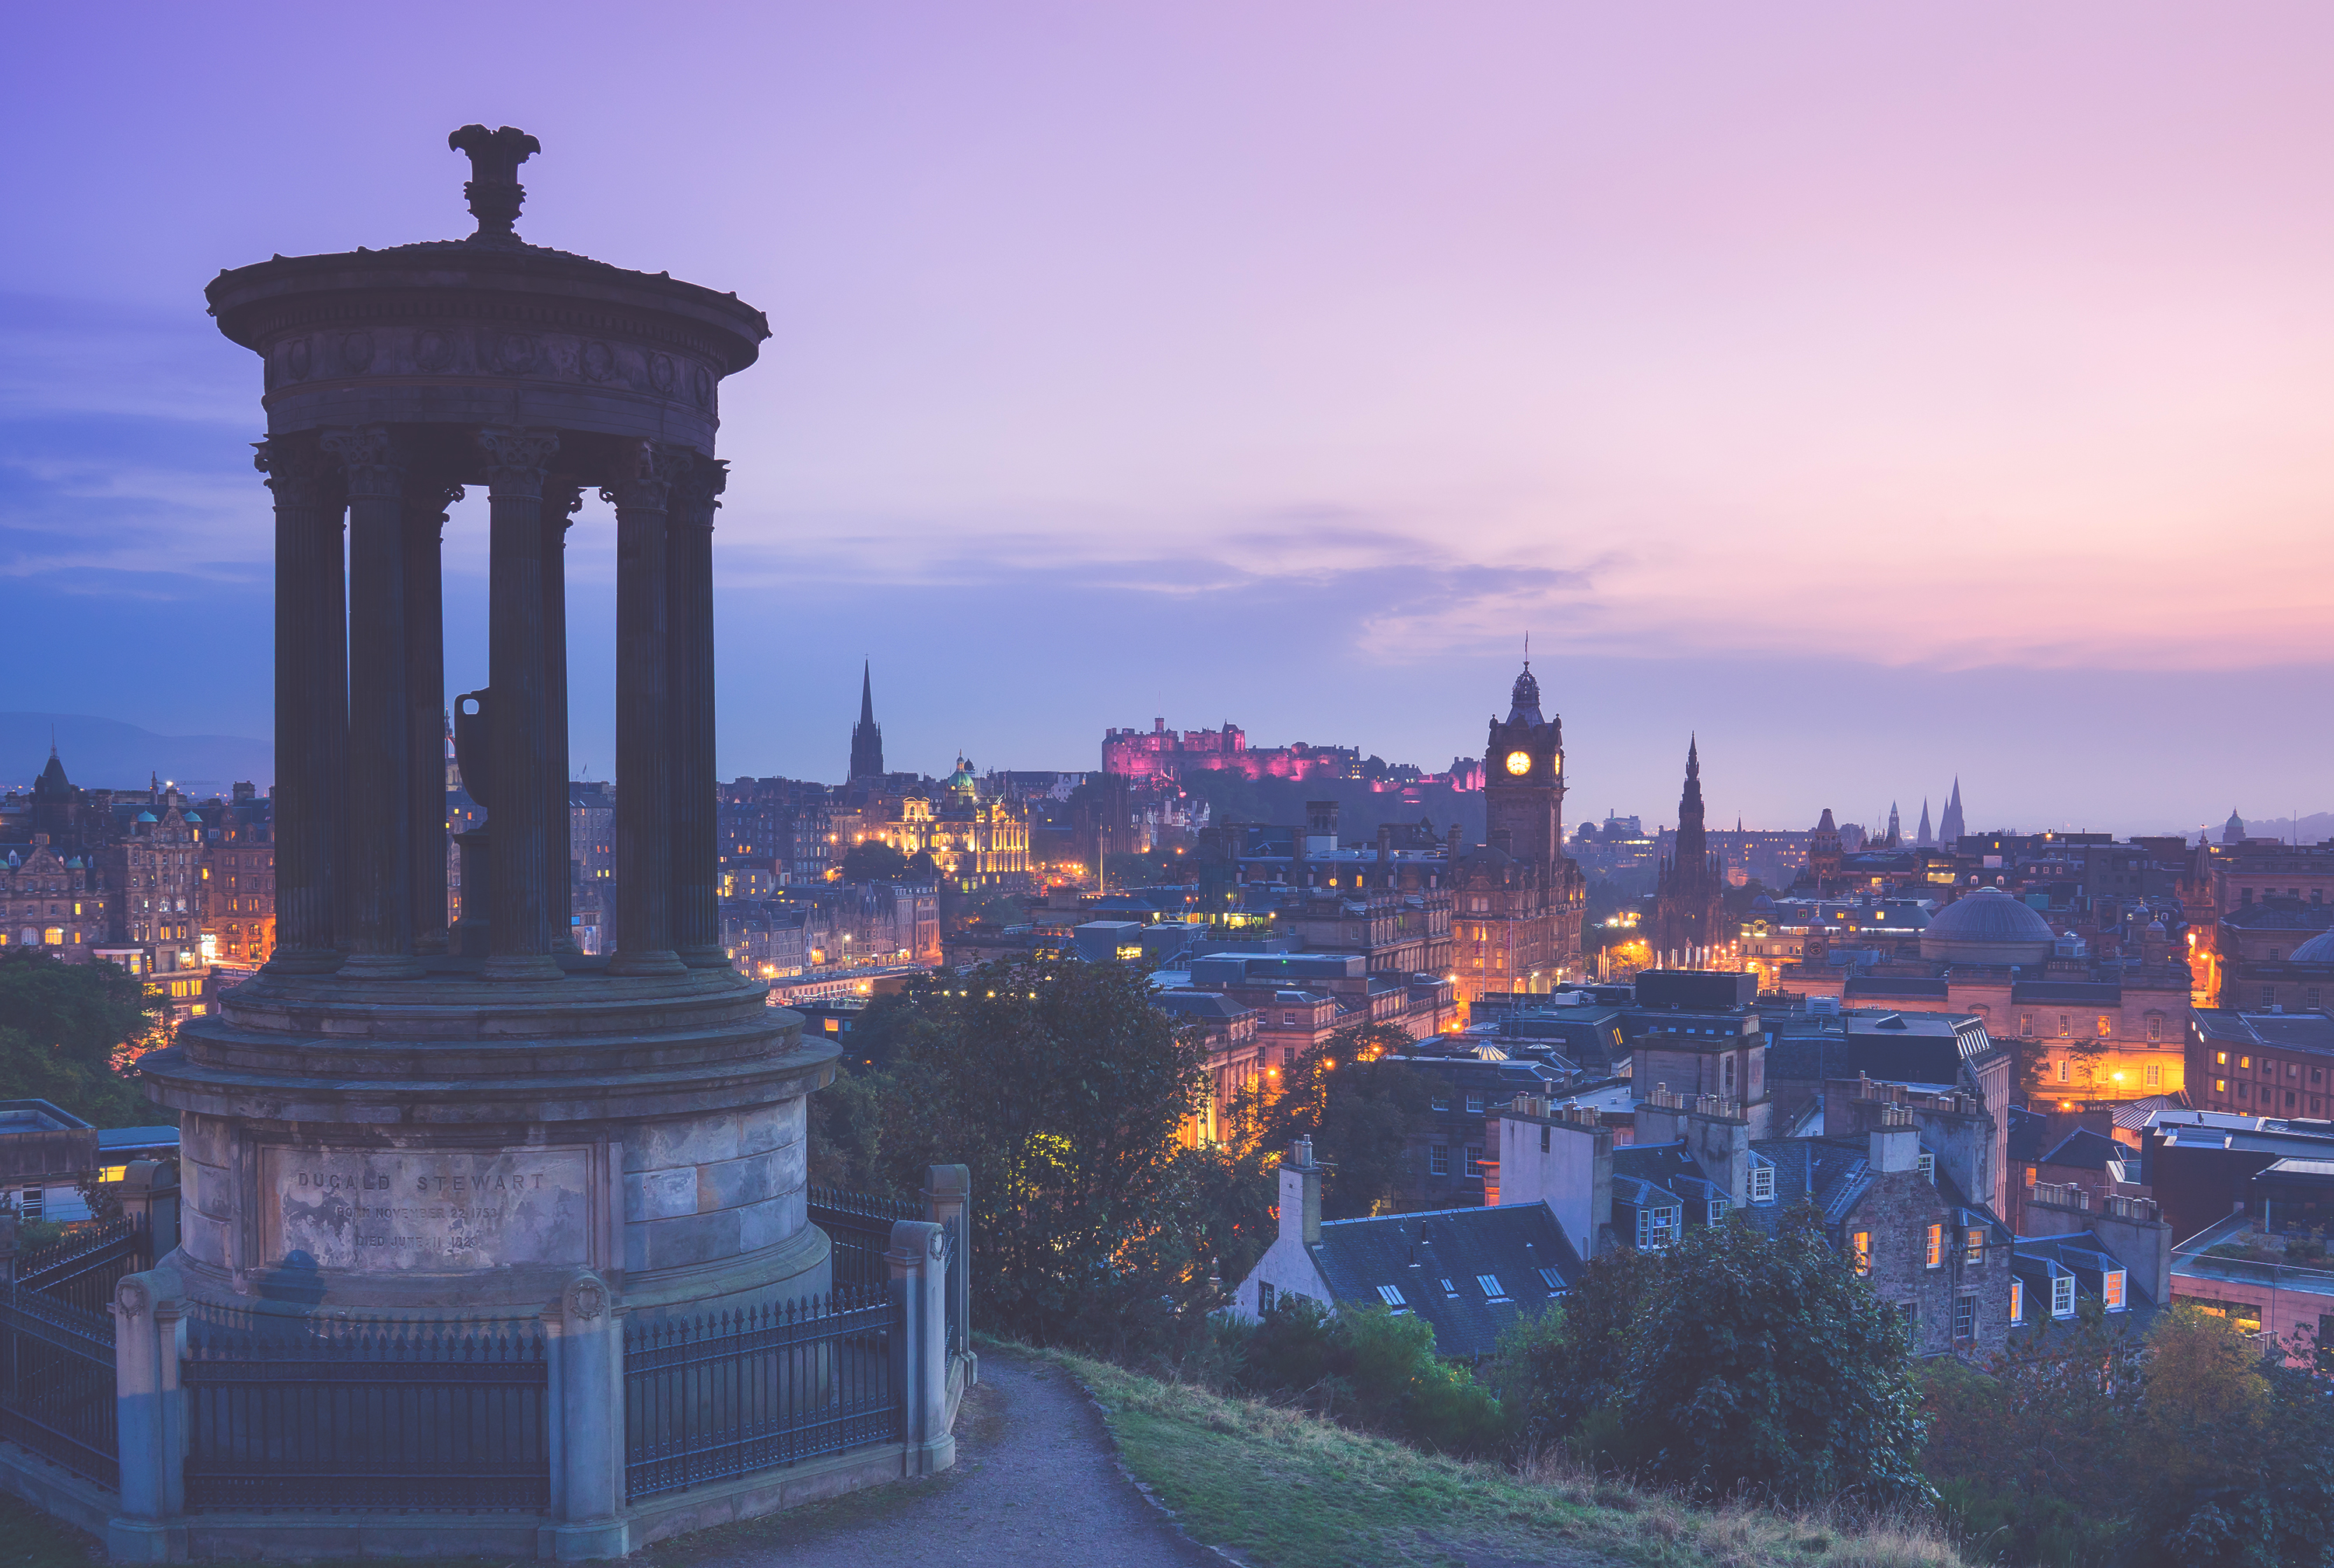 Edinburgh Science Festival 2019 launches in April